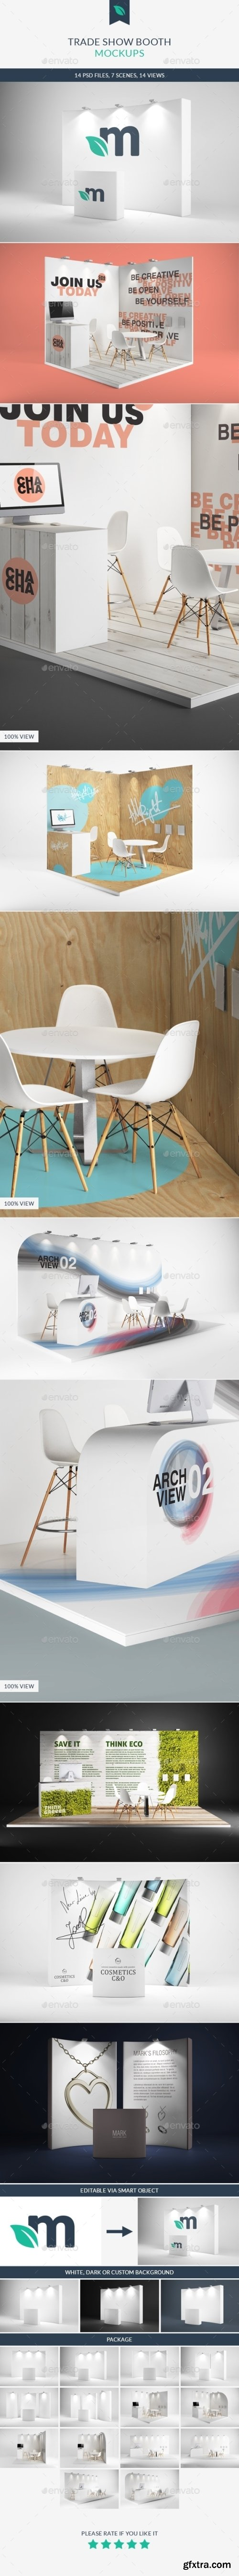 Graphicriver - Trade Show Booth Mockups 9273909